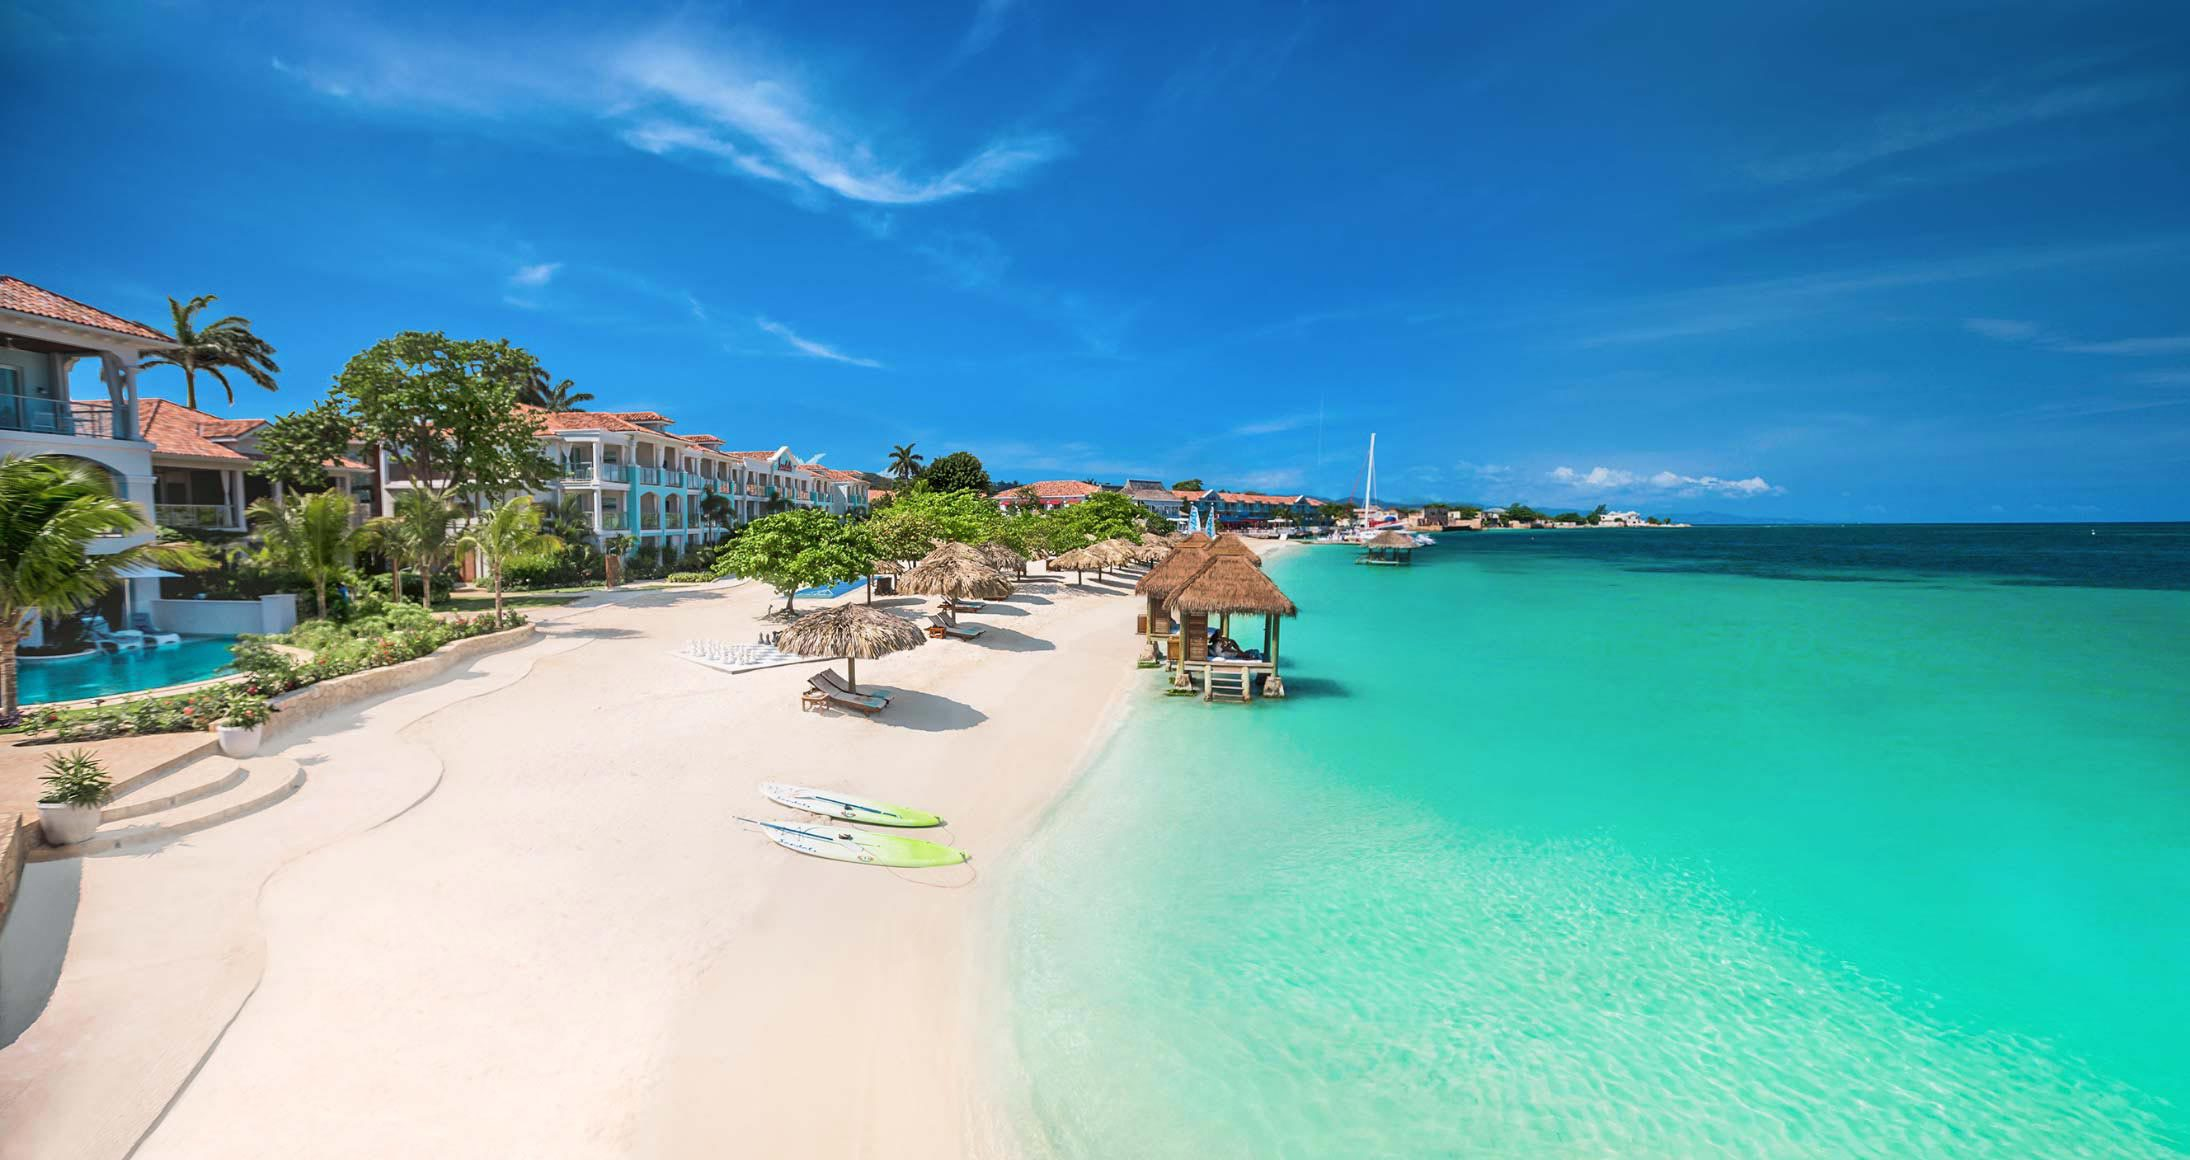 753886cceea1c Sandals Grande Antigua Luxury Resort in St. Johns